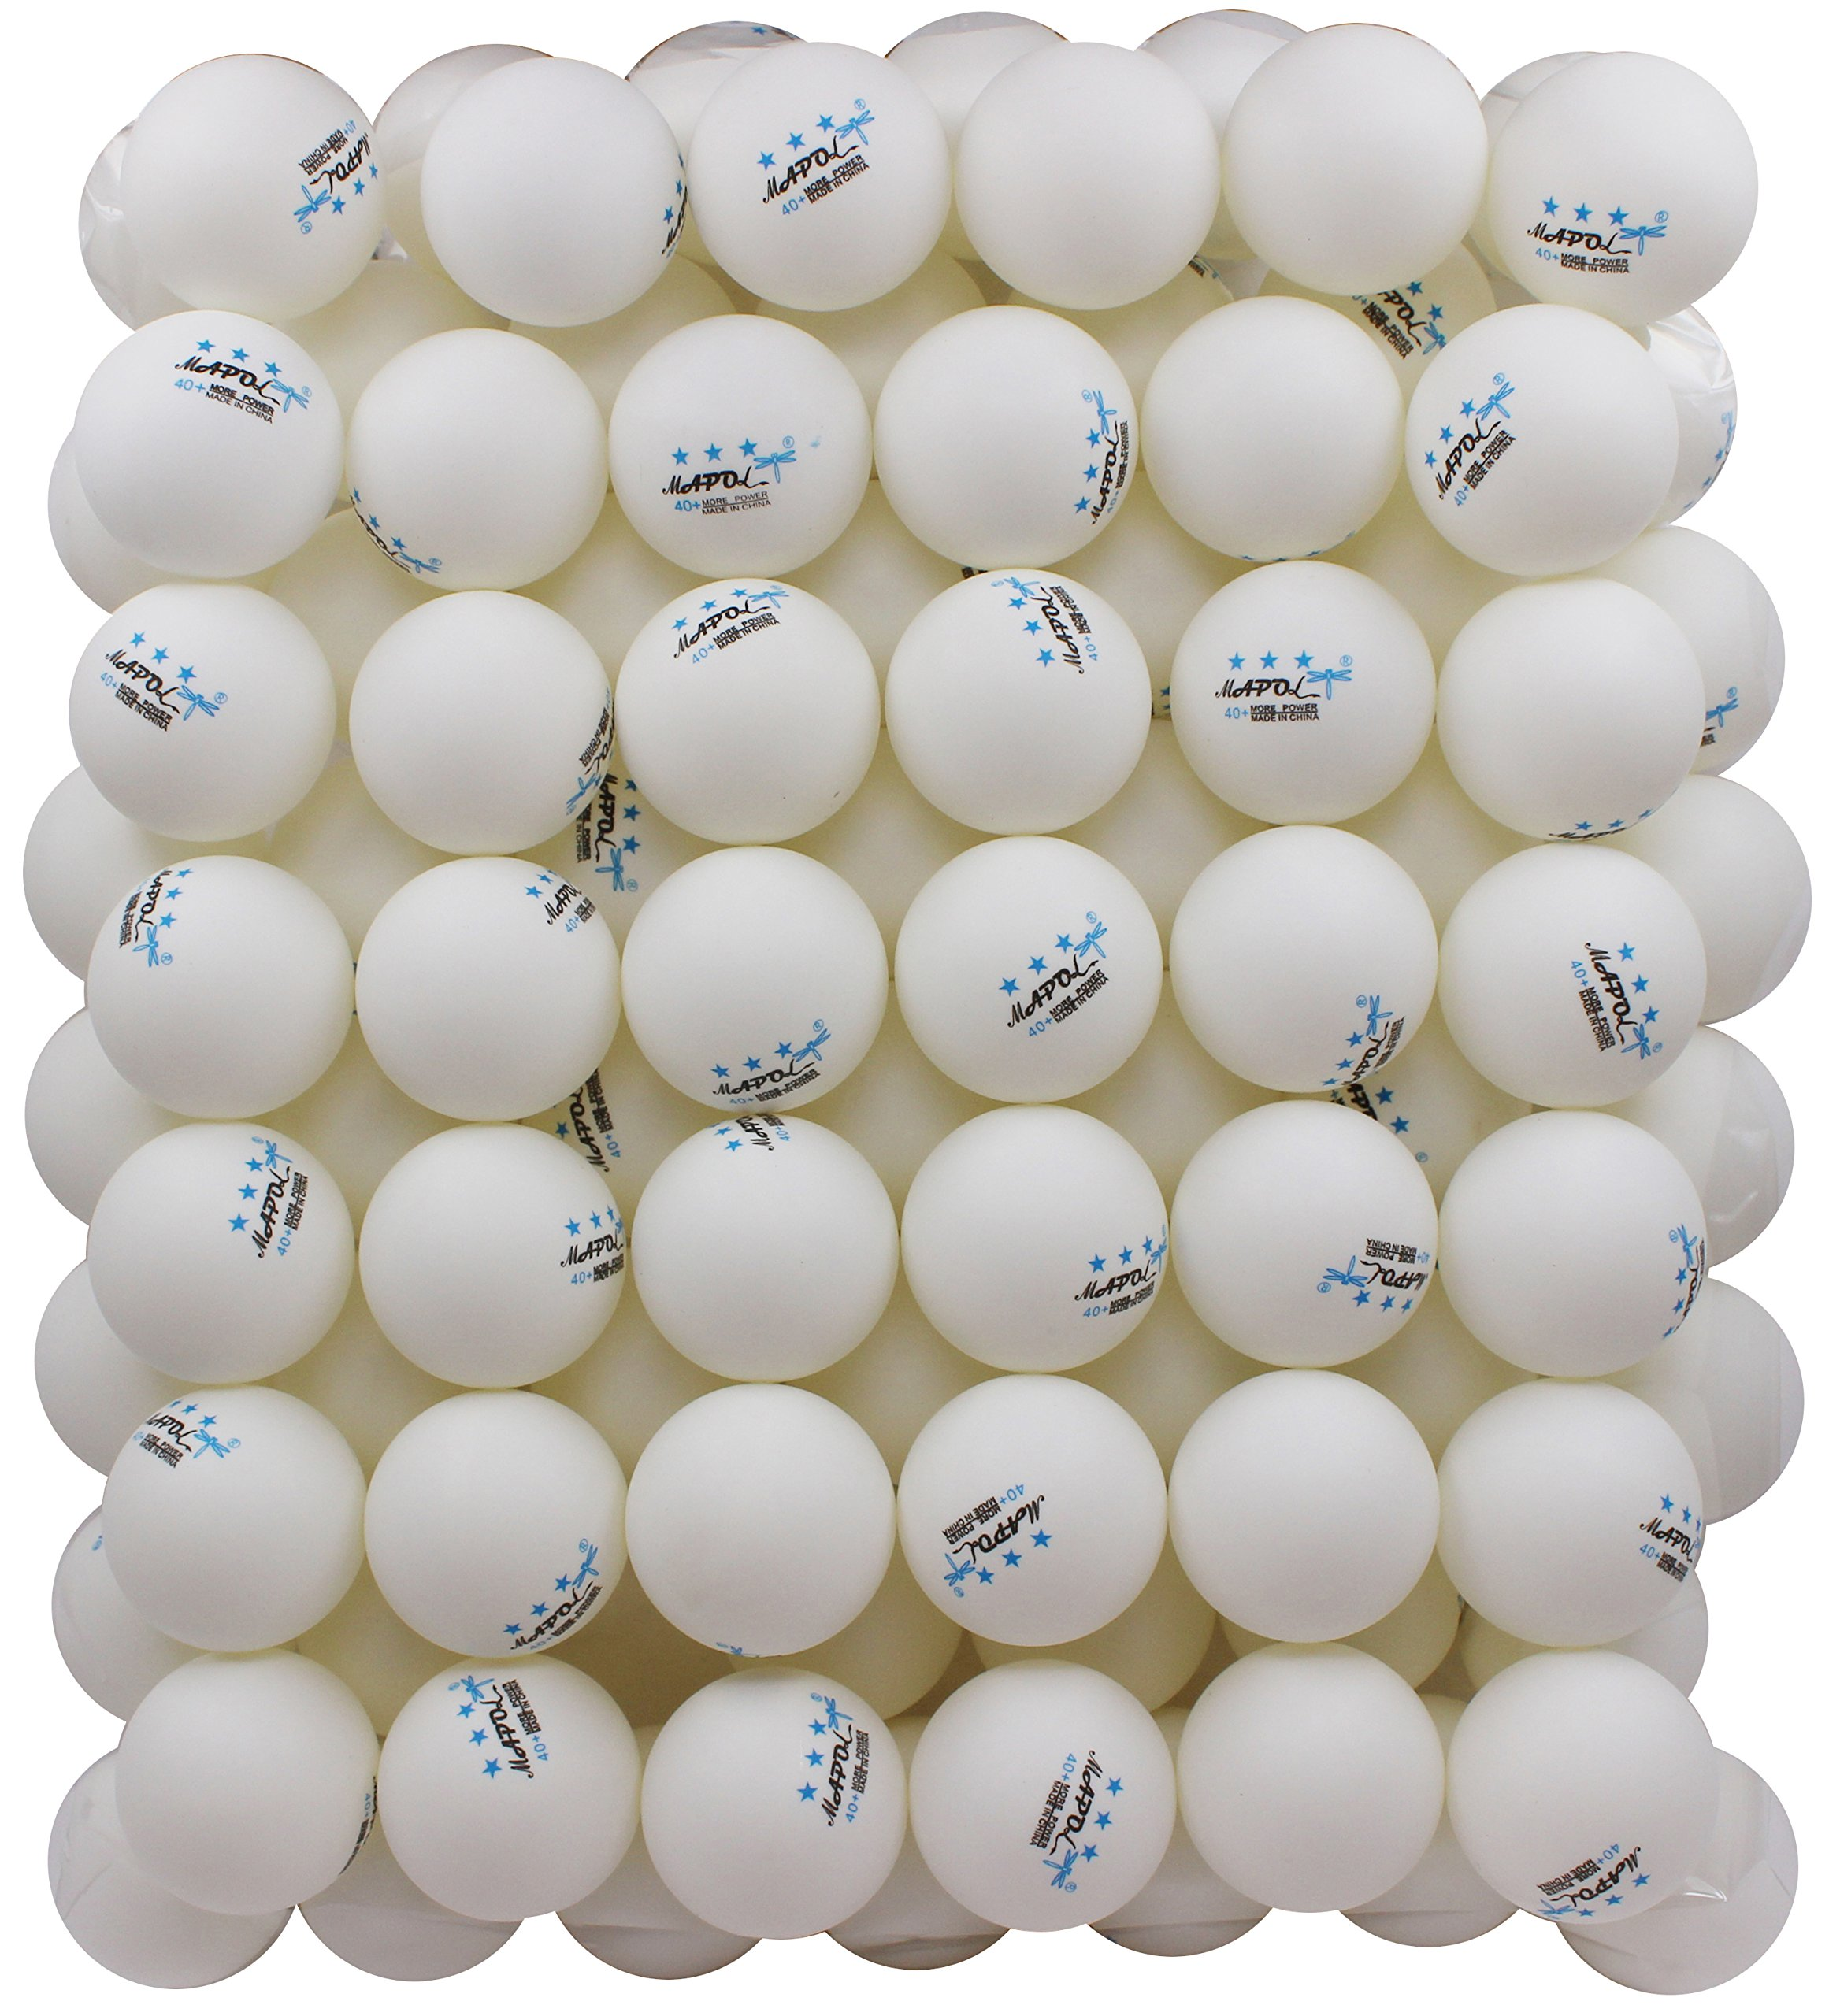 100 White 3-star 40mm Table Tennis Balls Advanced Training Ping Pong Ball